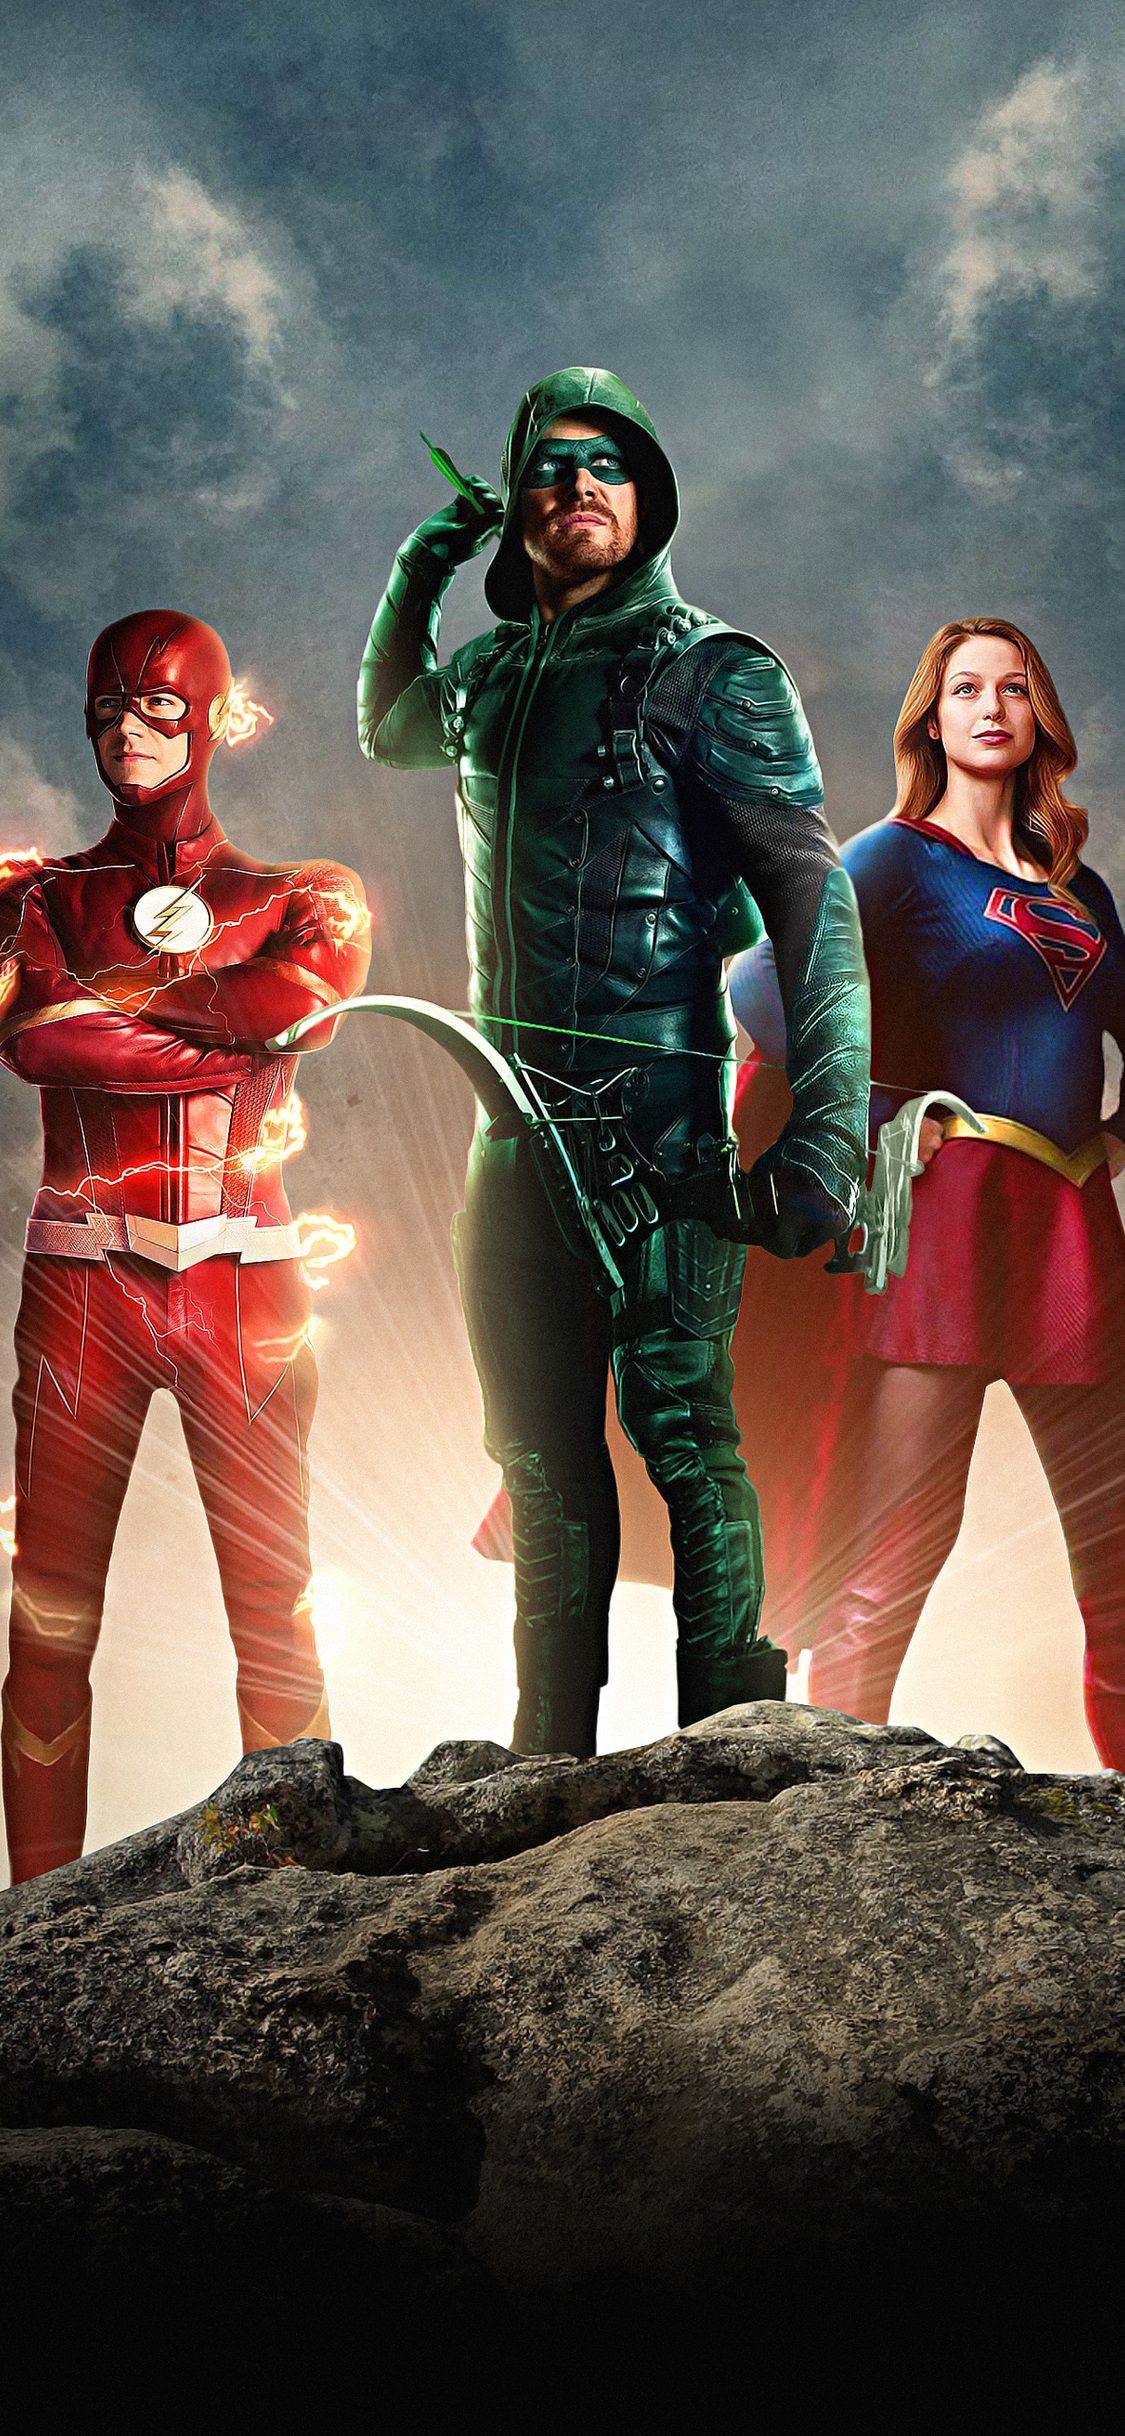 1125x2436 Arrow Flash Supergirl Dctv Trinity Iphone Xs